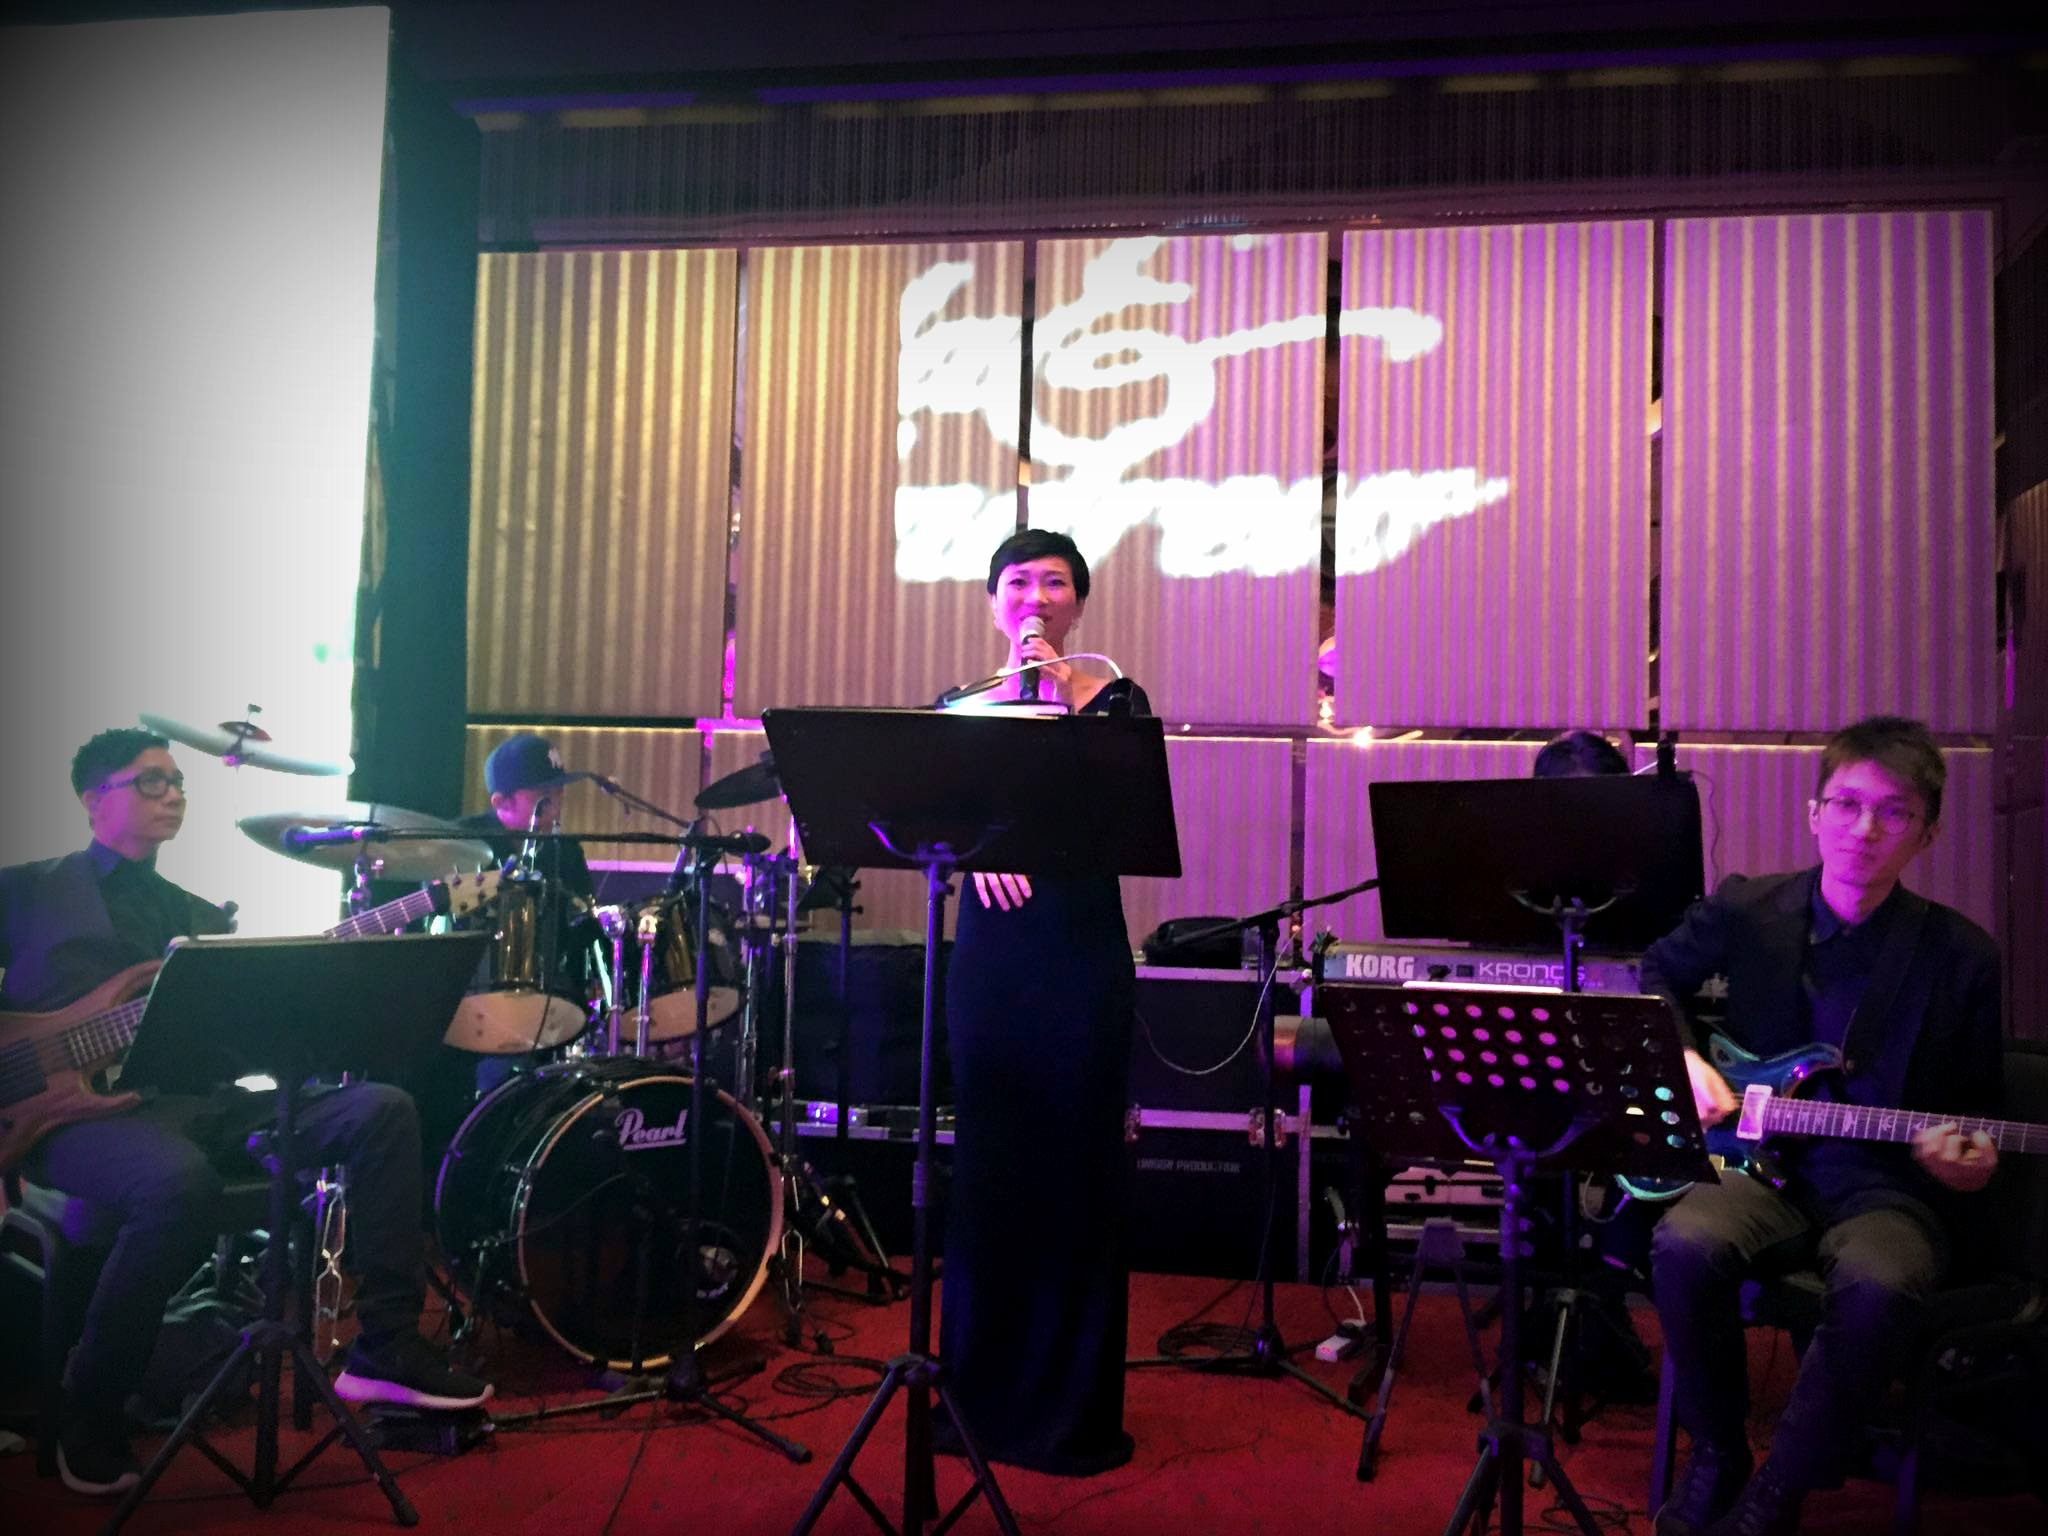 Unison Production Live Music band performance - Wedding in Intercontinental Hotel Hong Kong HK - 25 Oct , 2015